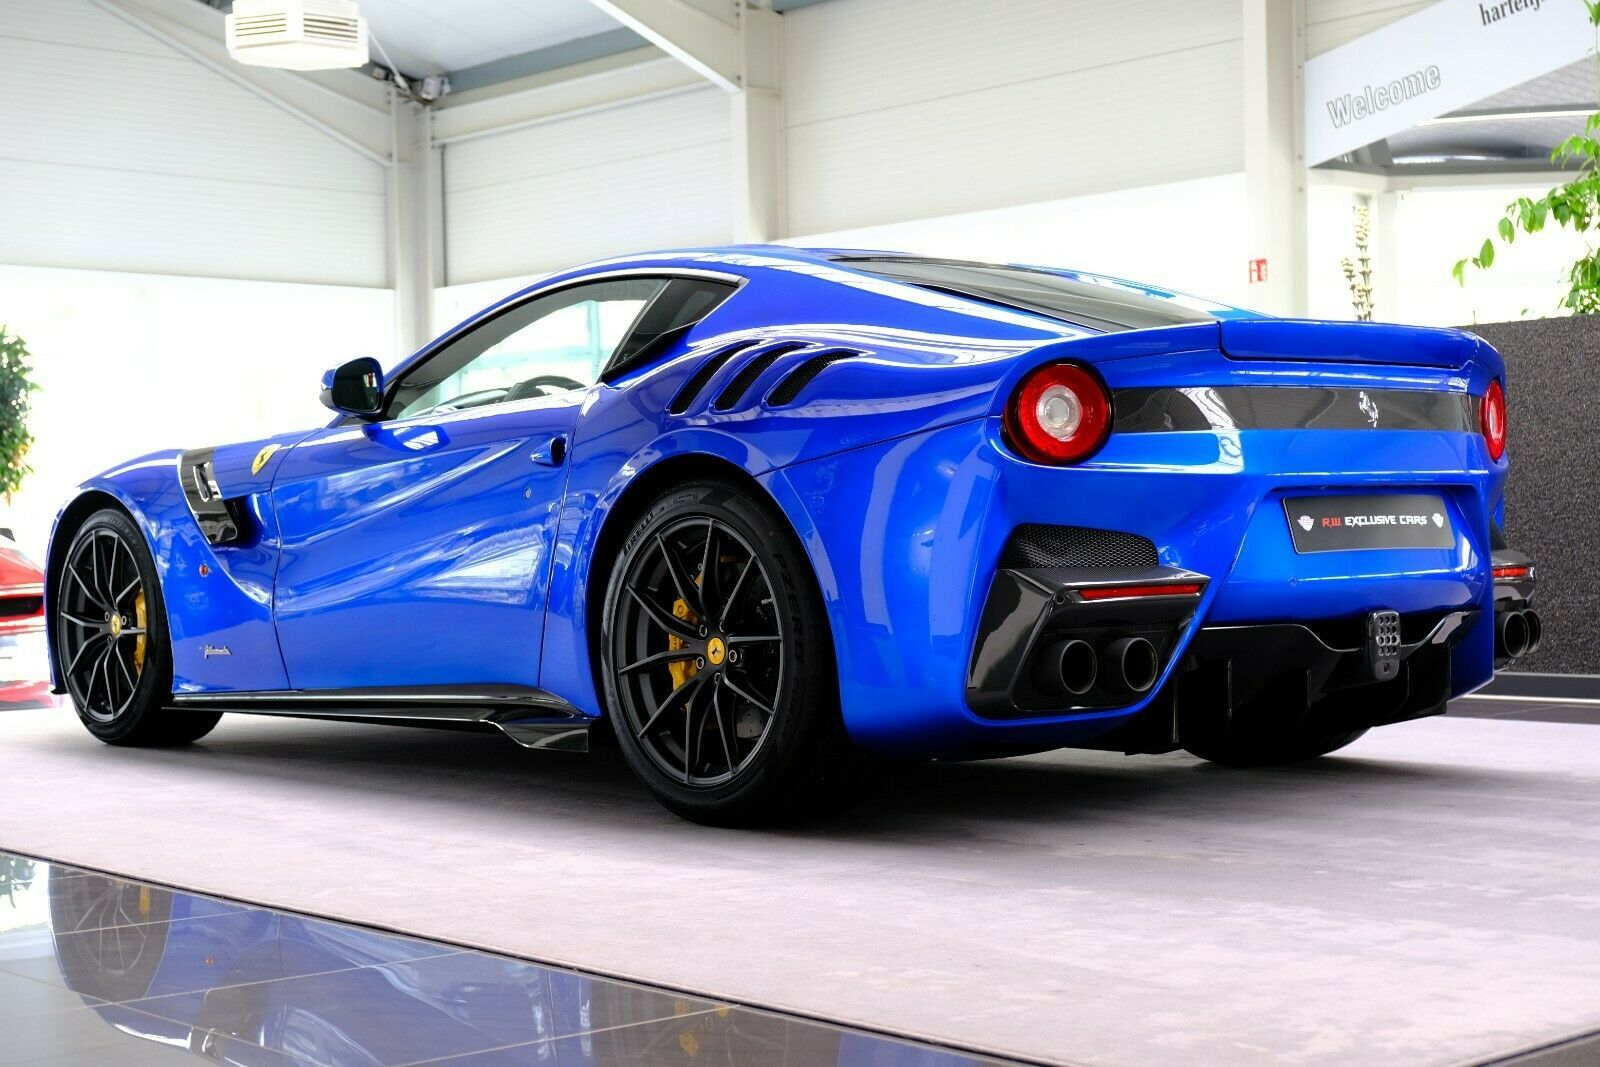 Ferrari F12 Tdf Tailor Made Limited Edition 1 Of 1 Rw Exclusive Germany For Sale On Luxurypulse In 2020 Ferrari F12 Tdf Ferrari F12 Ferrari